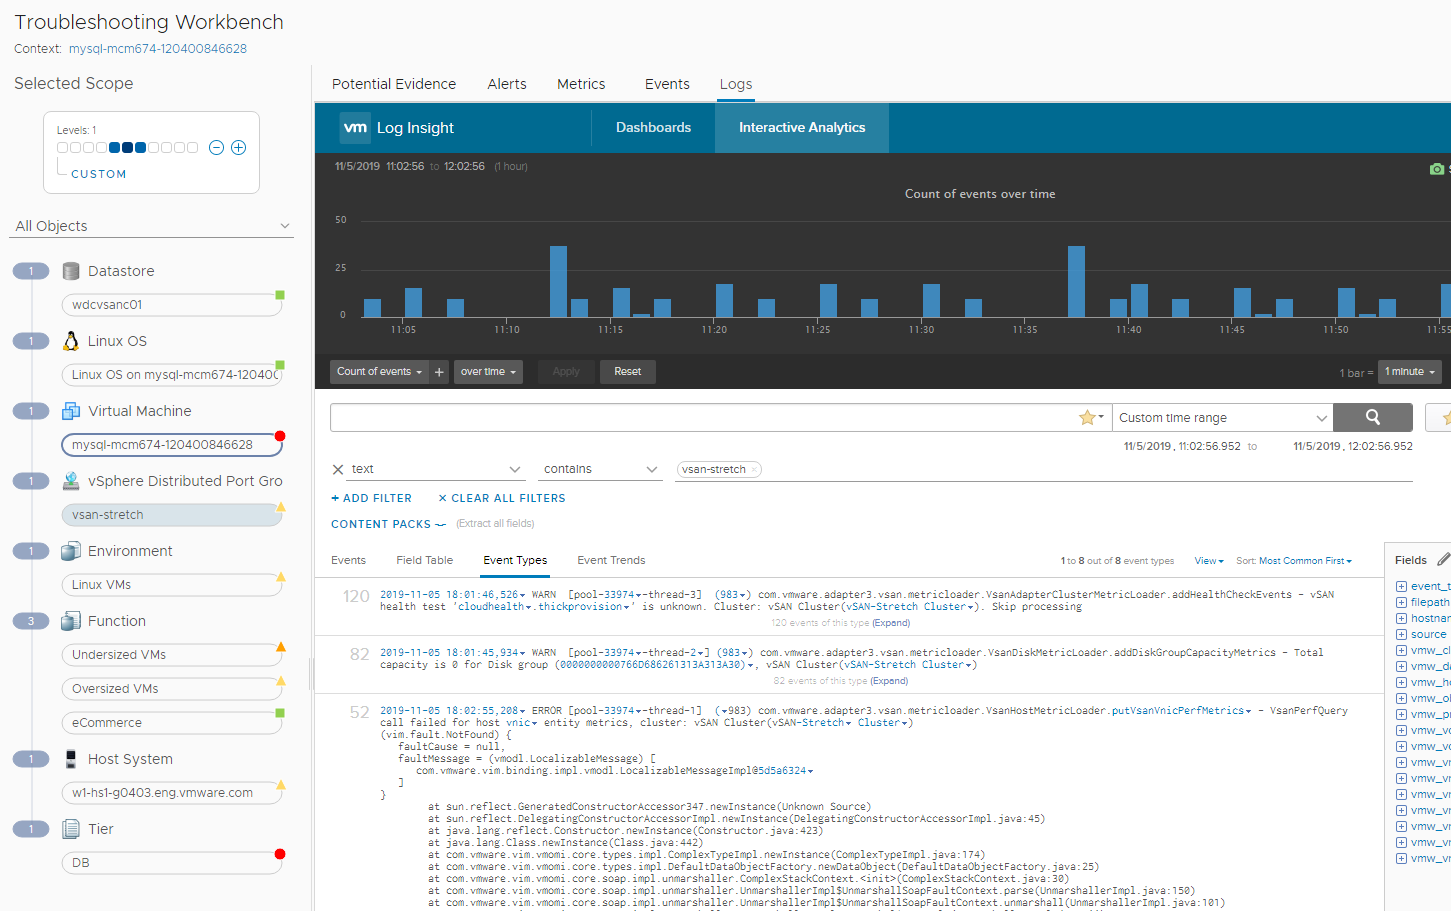 Using vRealize Log Insight for troubleshooting.